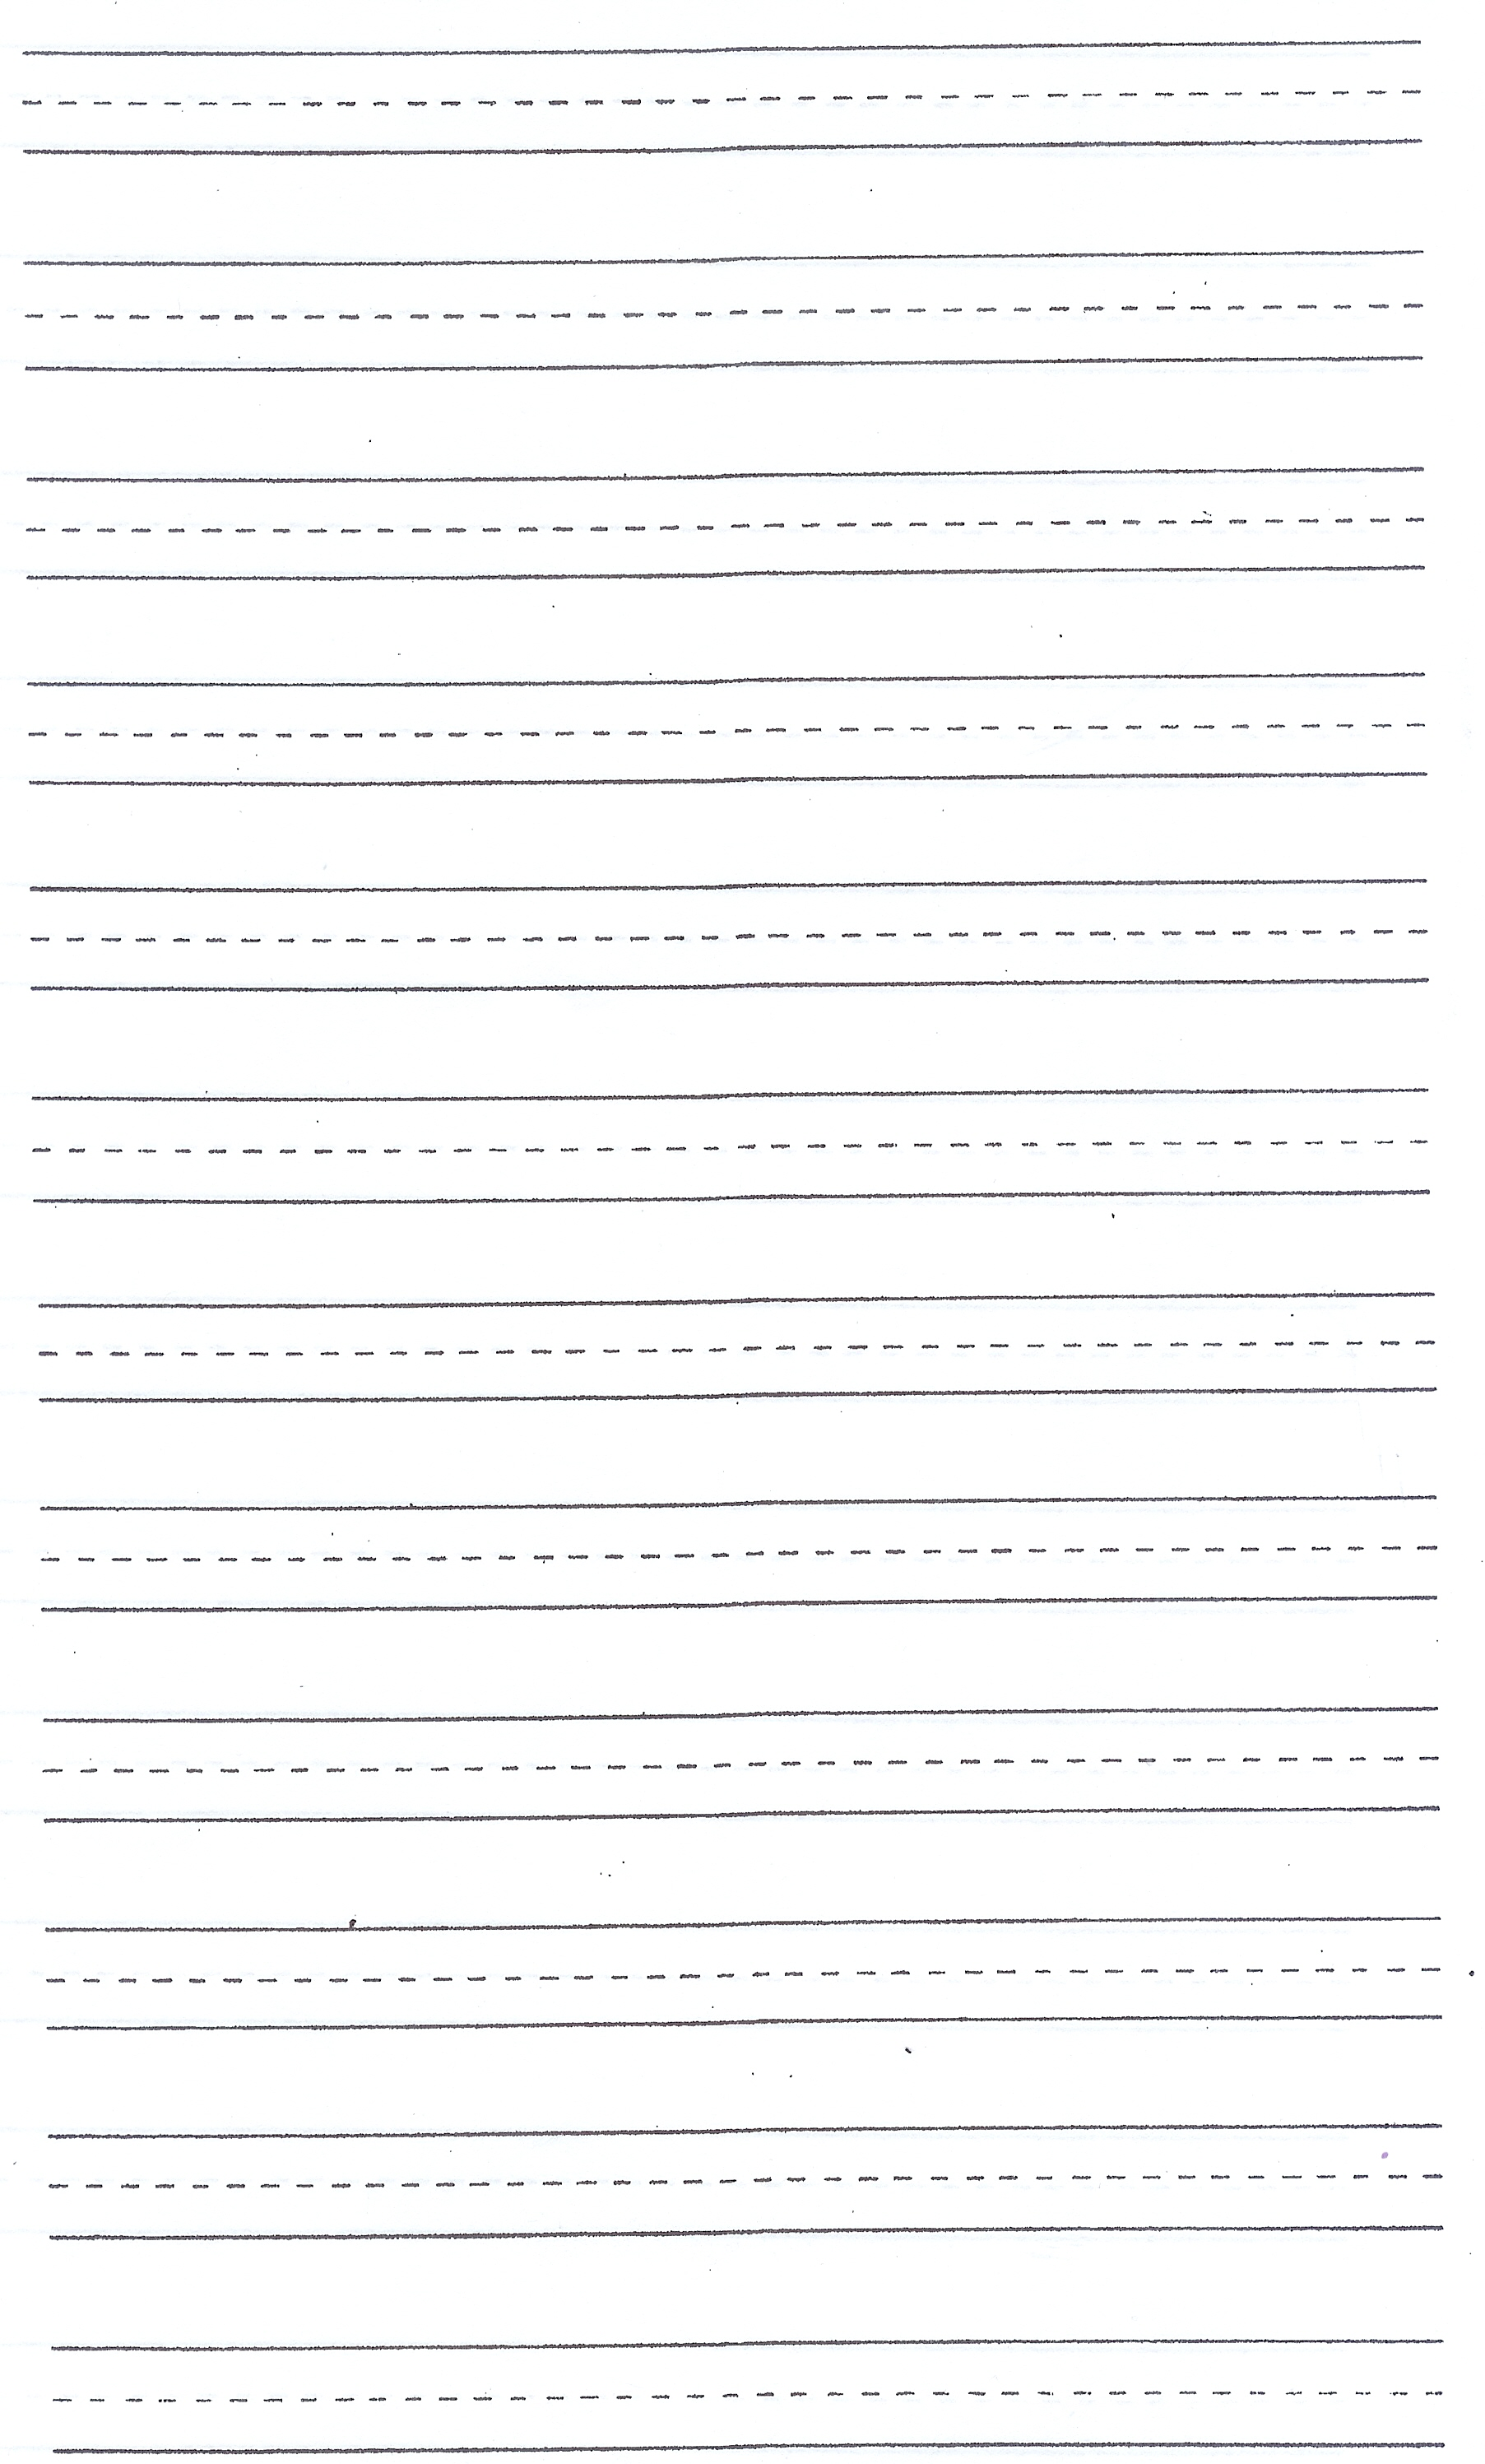 Research Paper Template For 3rd Grade